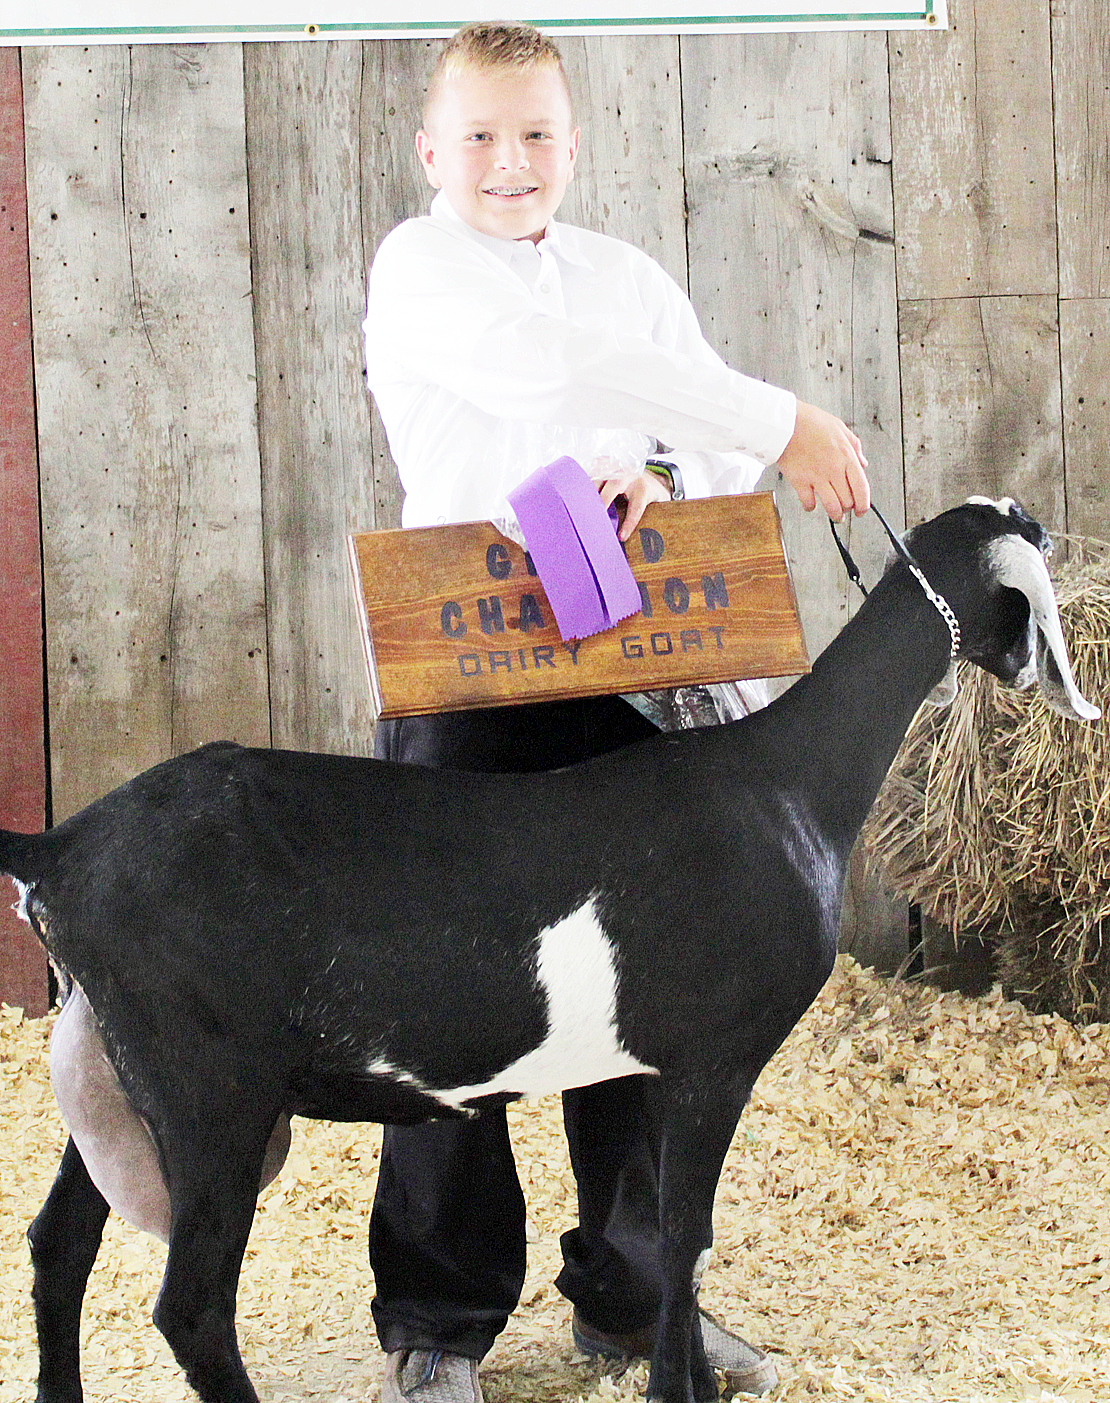 Tristan Simpson-Worley - Overall Dairy Goat Champion